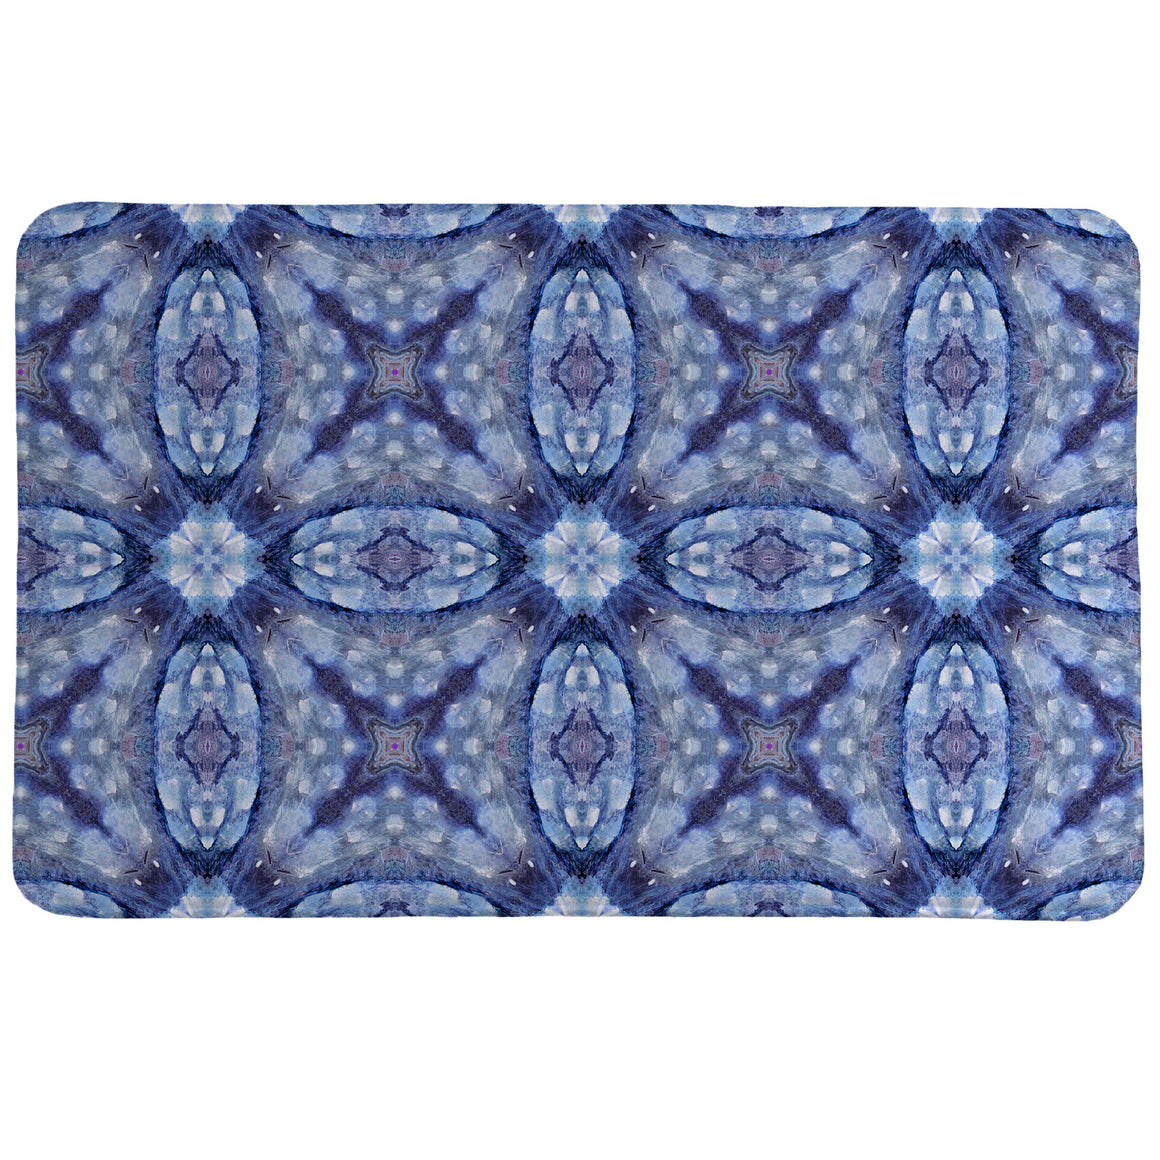 Mystery Blue Memory Foam Rug has an abstract, kaleidoscope-like pattern dominated by various shades of blue.